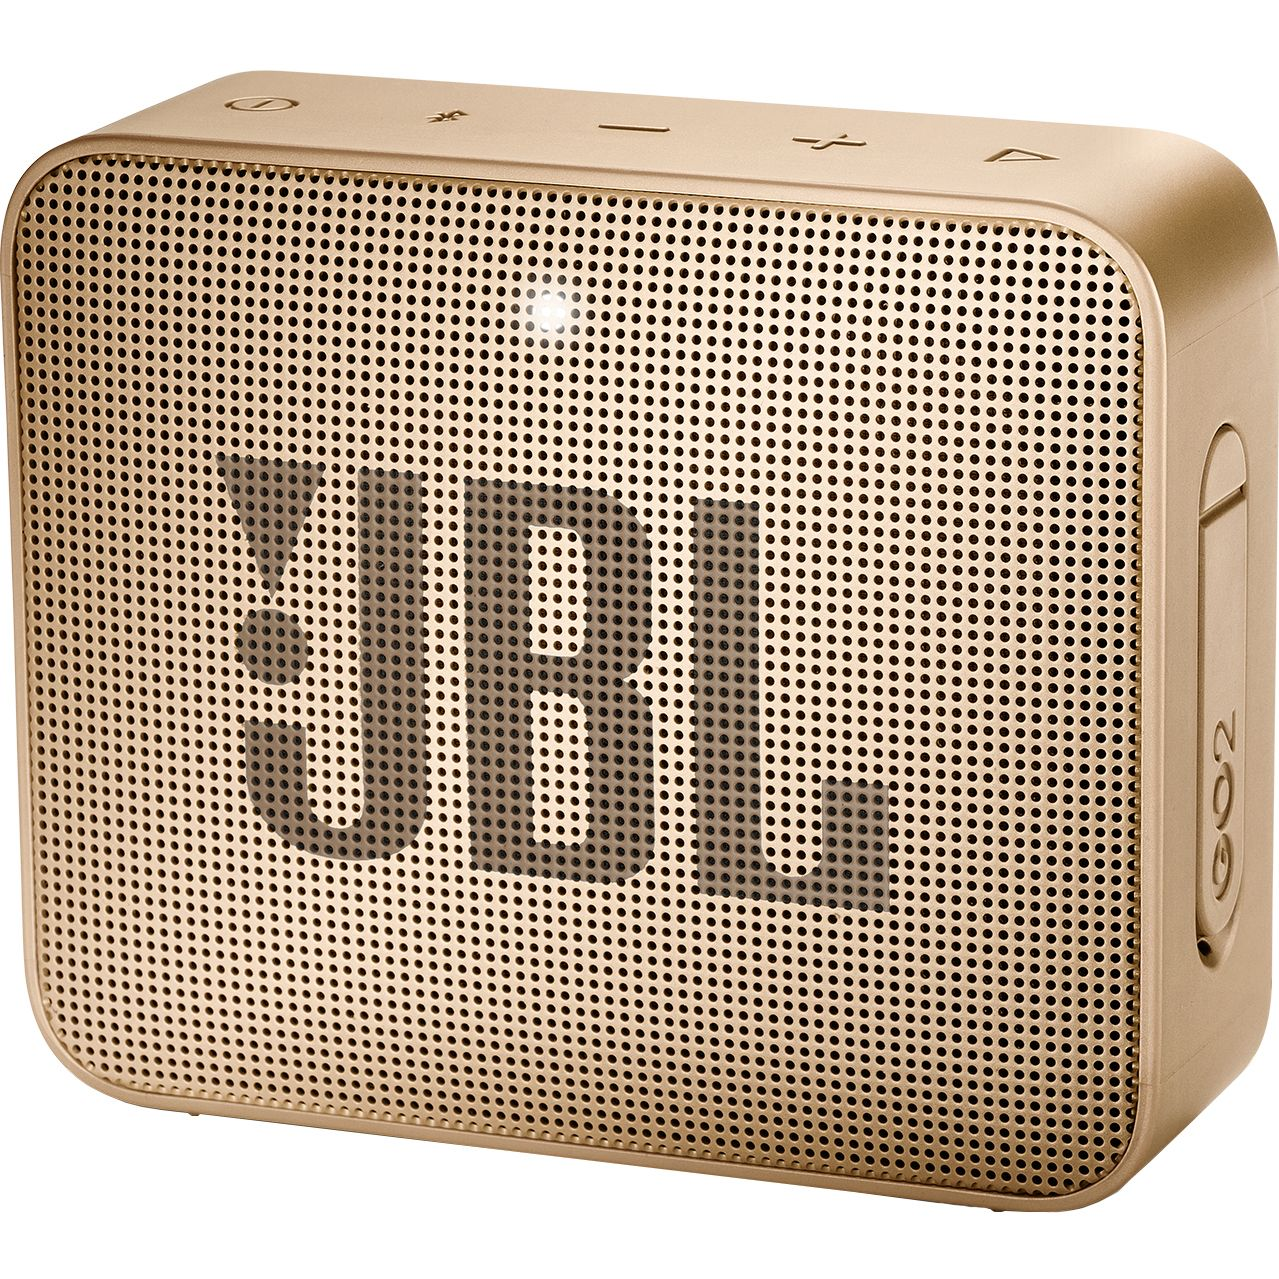 Boxa portabila JBL Go 2, Wireless, Bluetooth, IPX7 Waterproof, Champagne